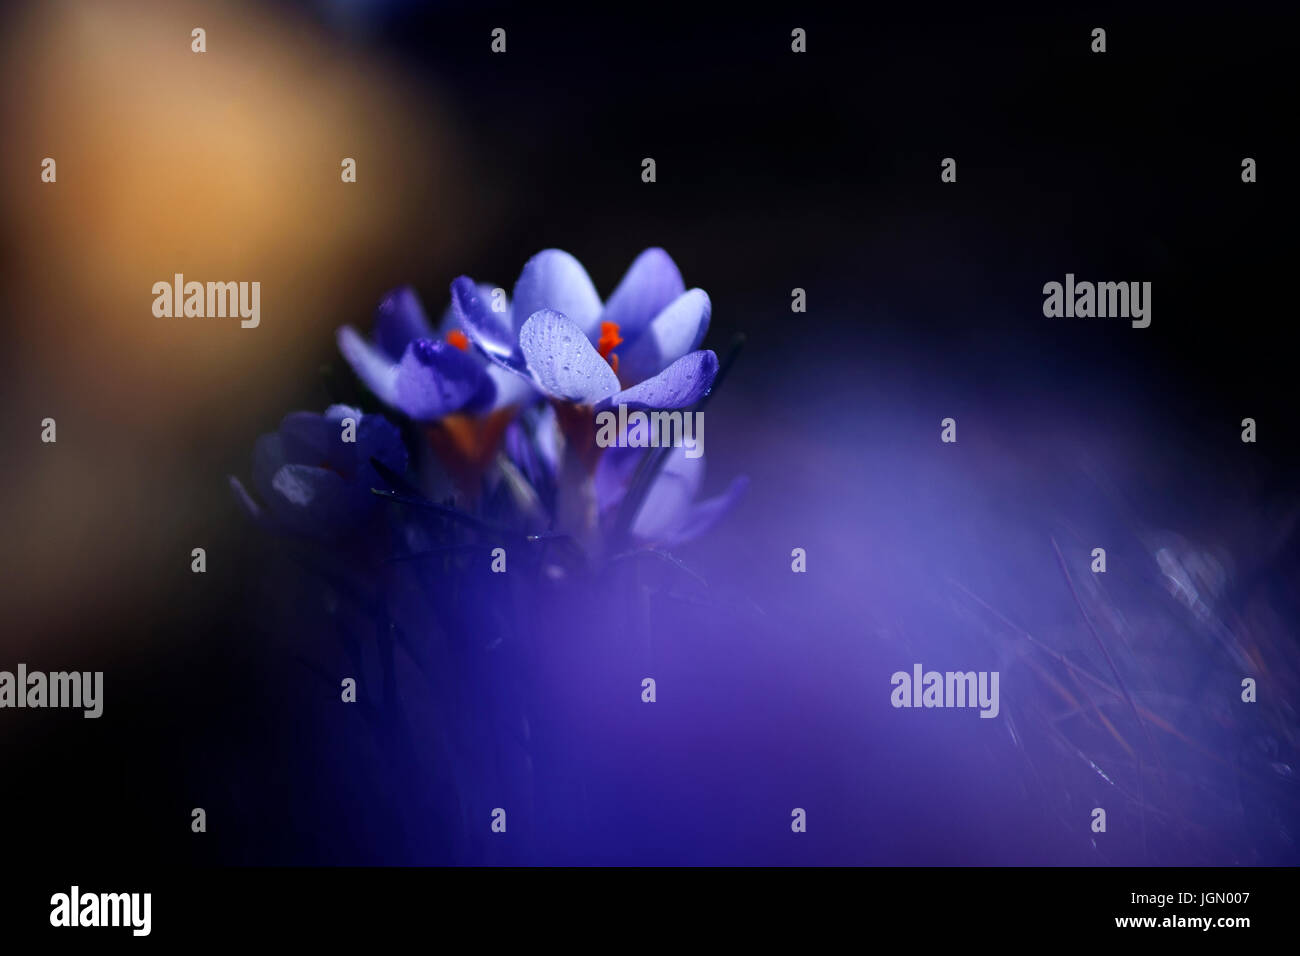 Creative artistic flower photo in sunset - Stock Image